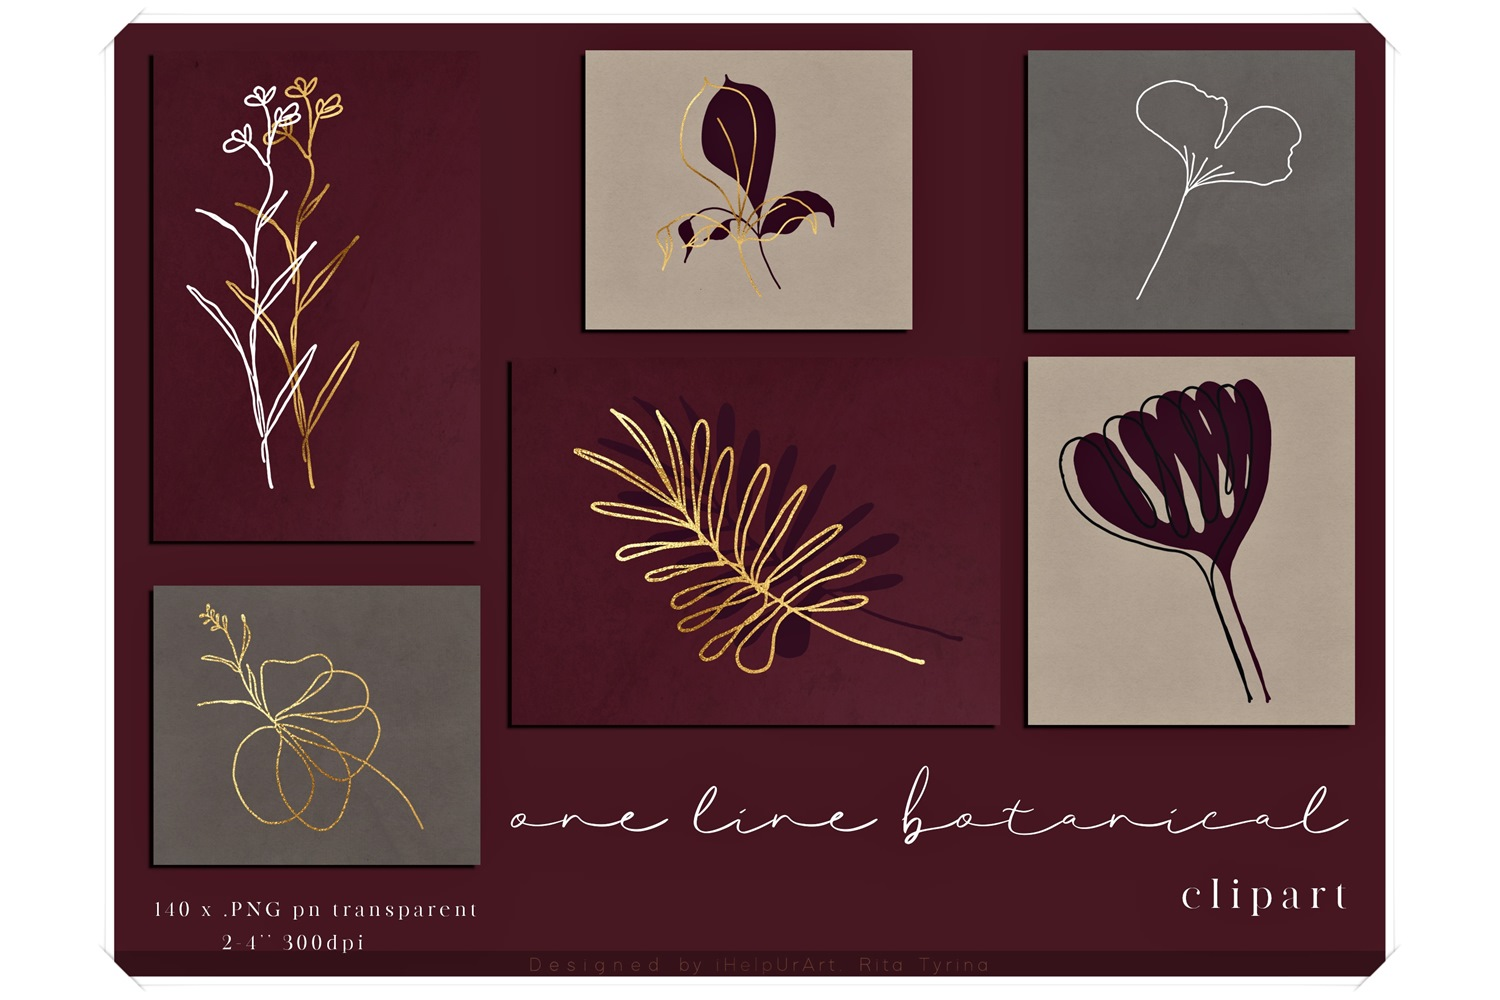 One Line Floral Clipart - Linear Art example image 1